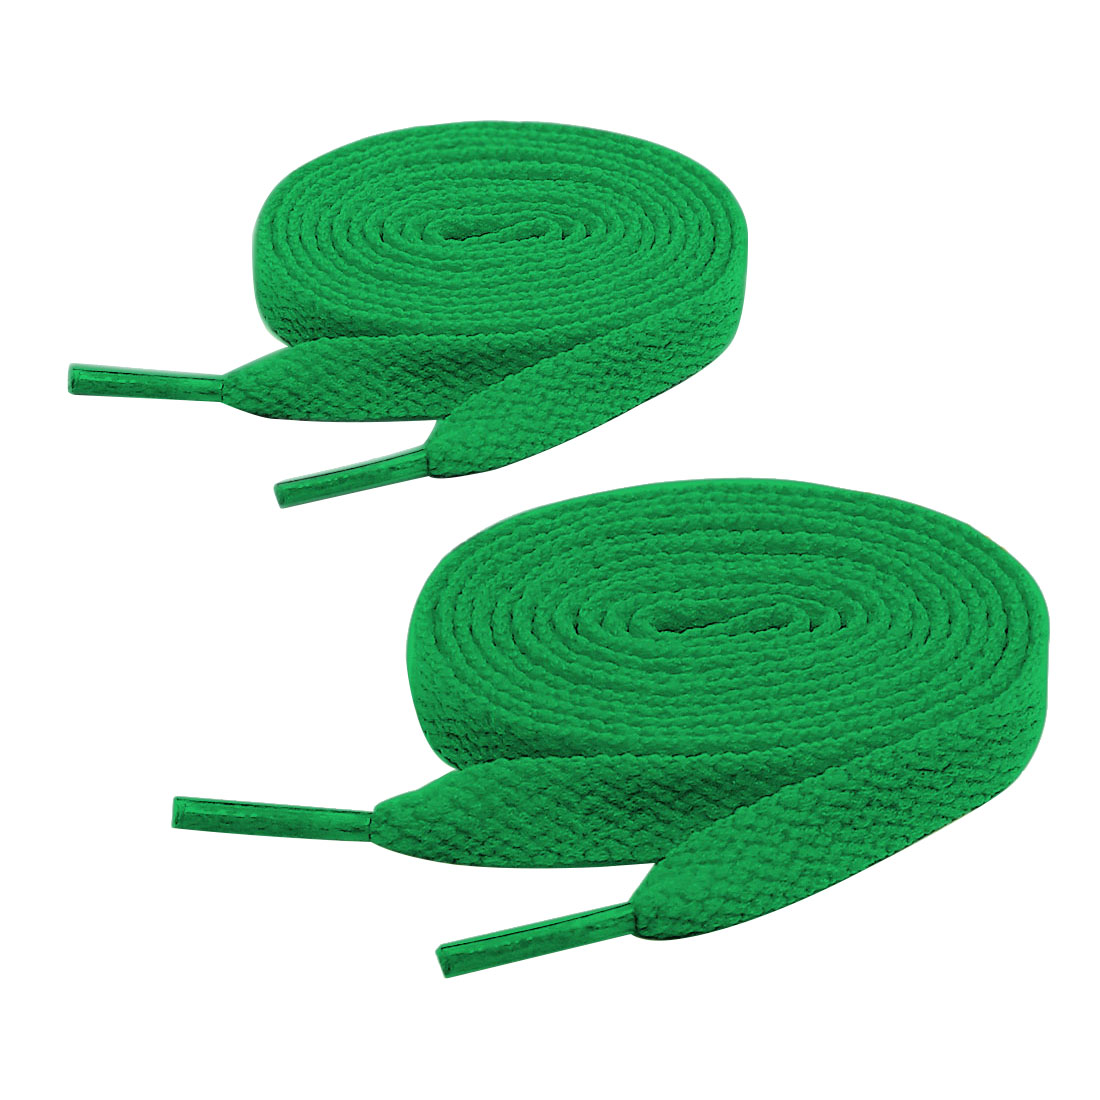 Unisex 2 Pairs Classic Flat Sports Shoes Trainers Shoelaces 123cm Length Green